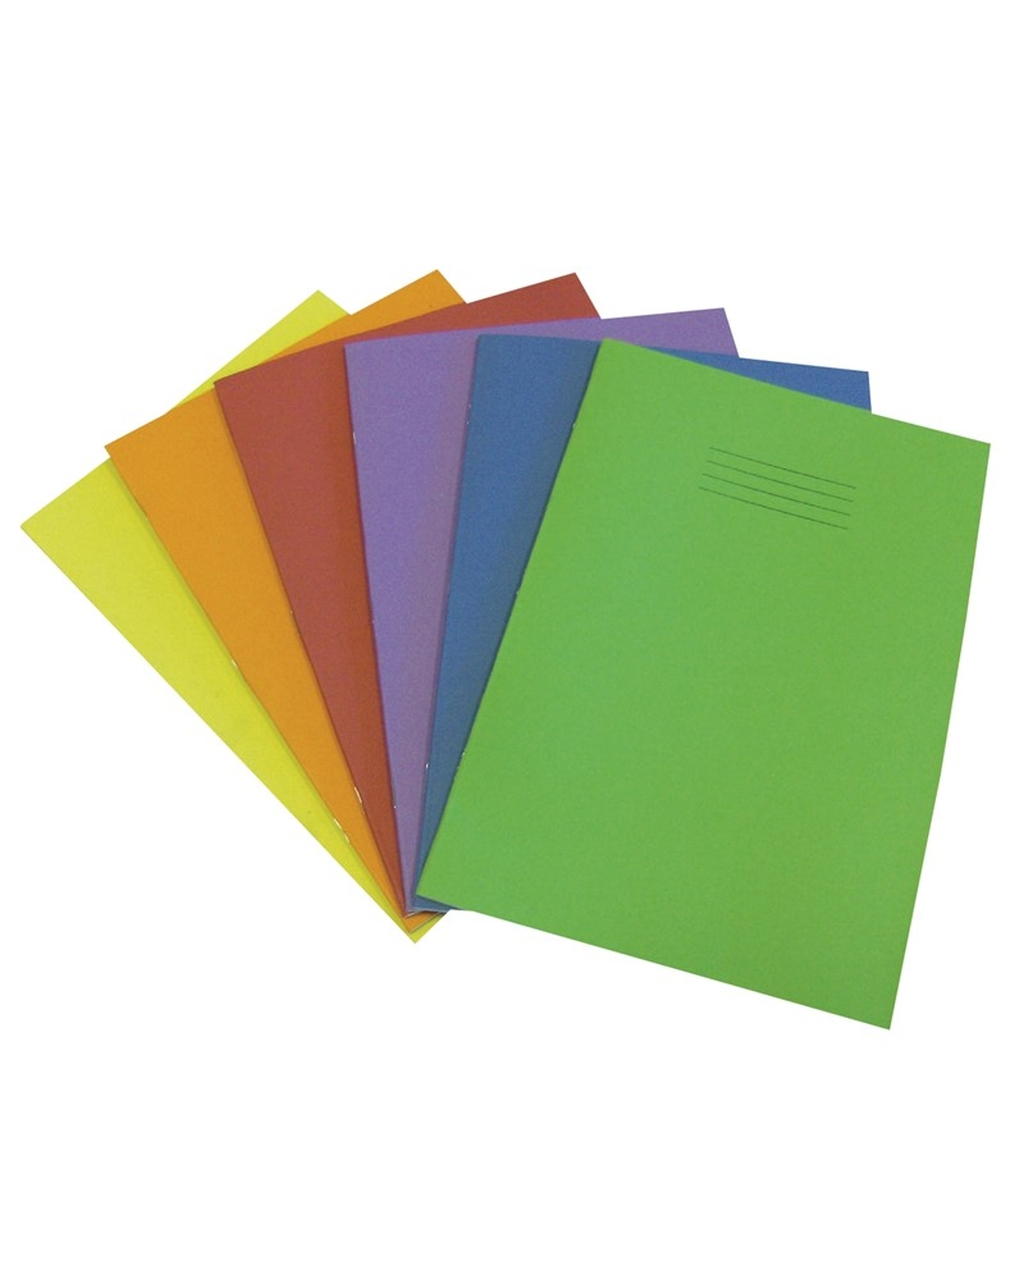 Exercise Book A4 (297 x 210mm) Light Blue Cover 15mm Ruled 32 Pages